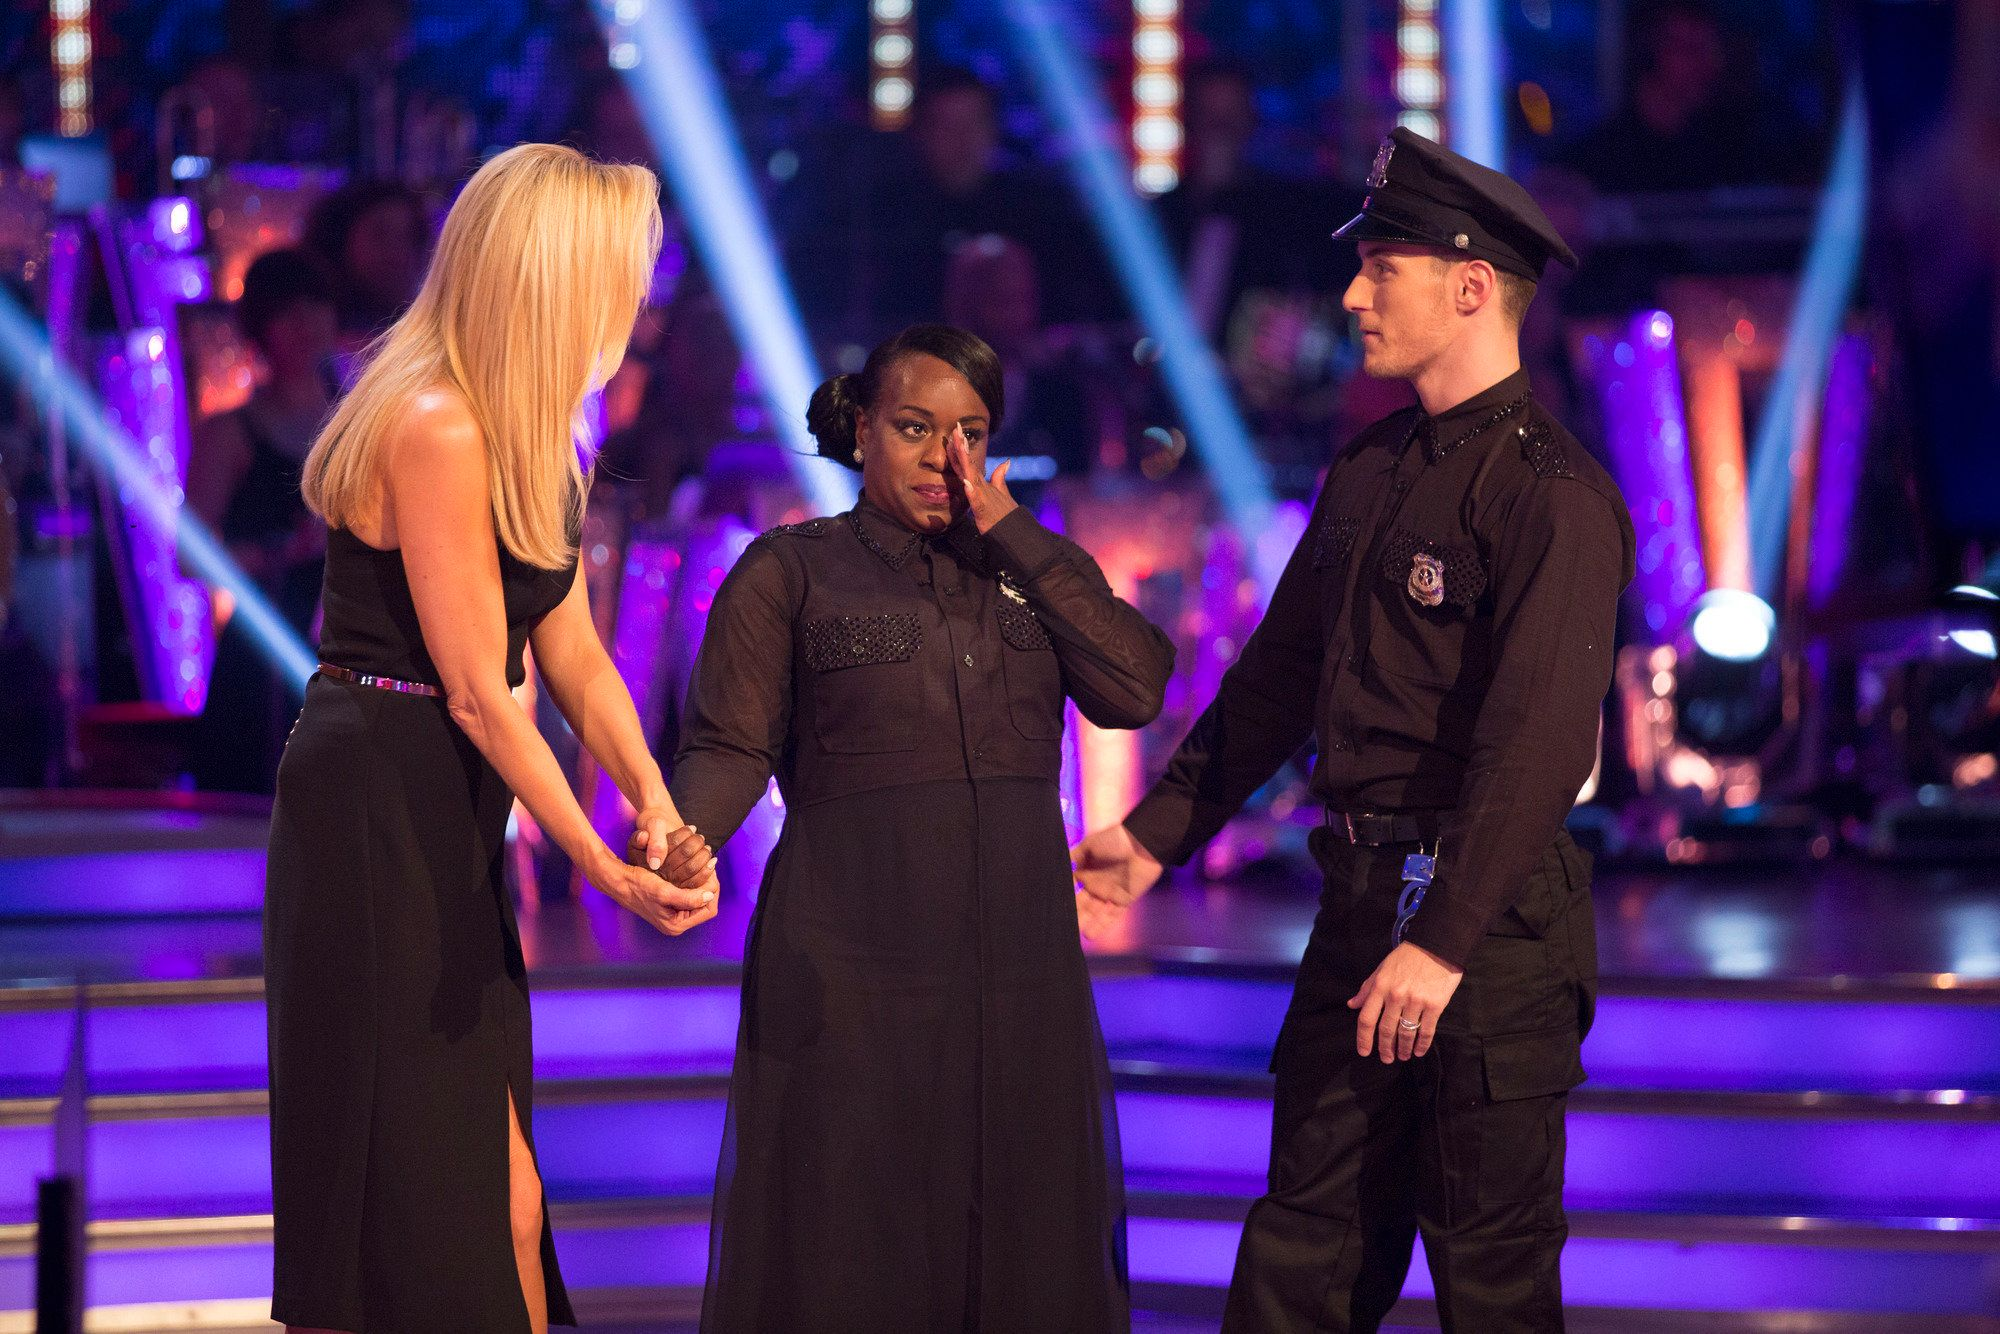 'Strictly' Accused Of Racism Following Tameka's